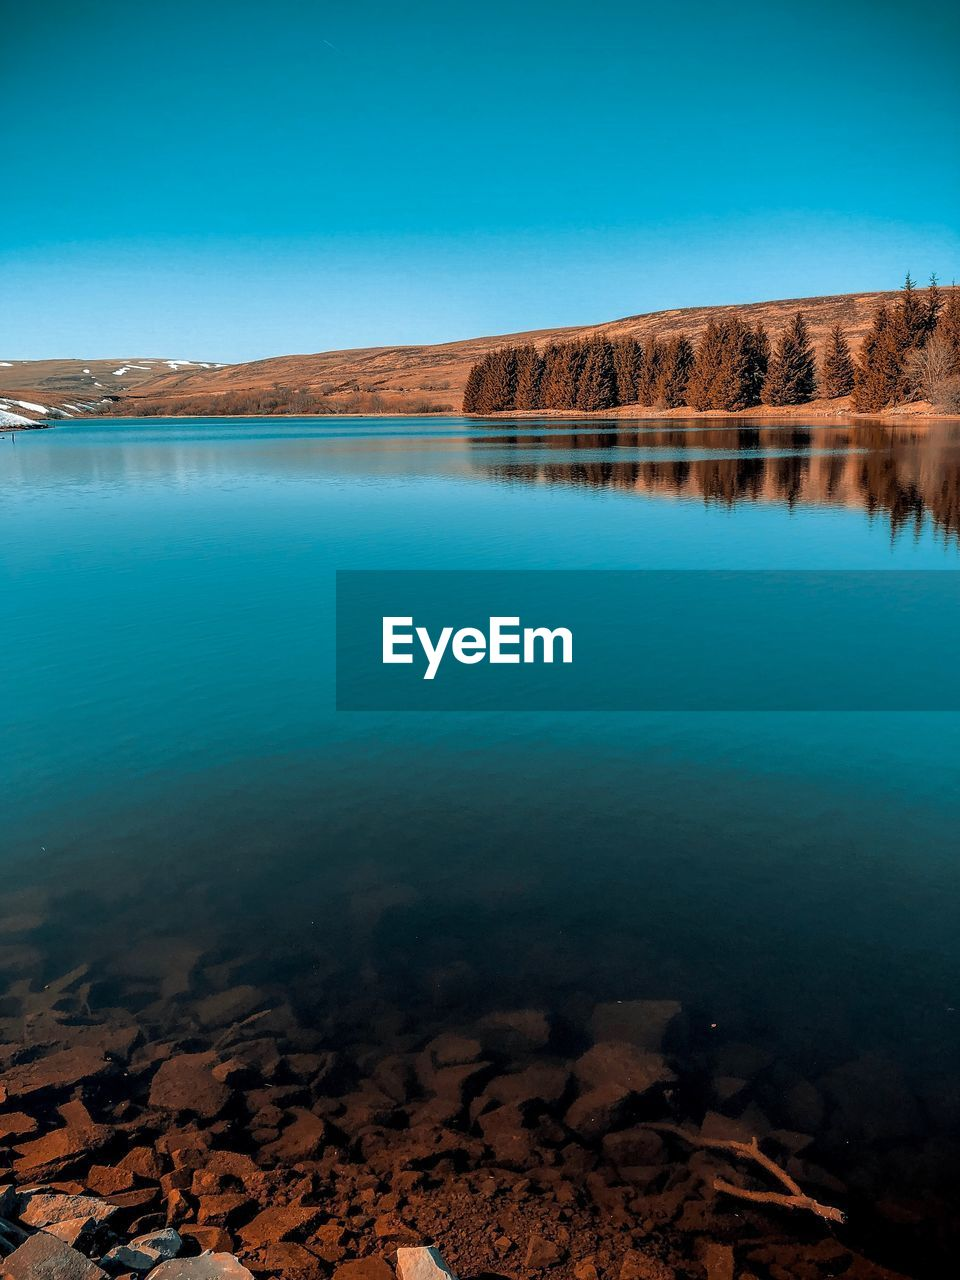 water, tranquility, scenics - nature, tranquil scene, sky, beauty in nature, lake, nature, no people, non-urban scene, day, land, blue, mountain, reflection, clear sky, idyllic, solid, rock, outdoors, arid climate, turquoise colored